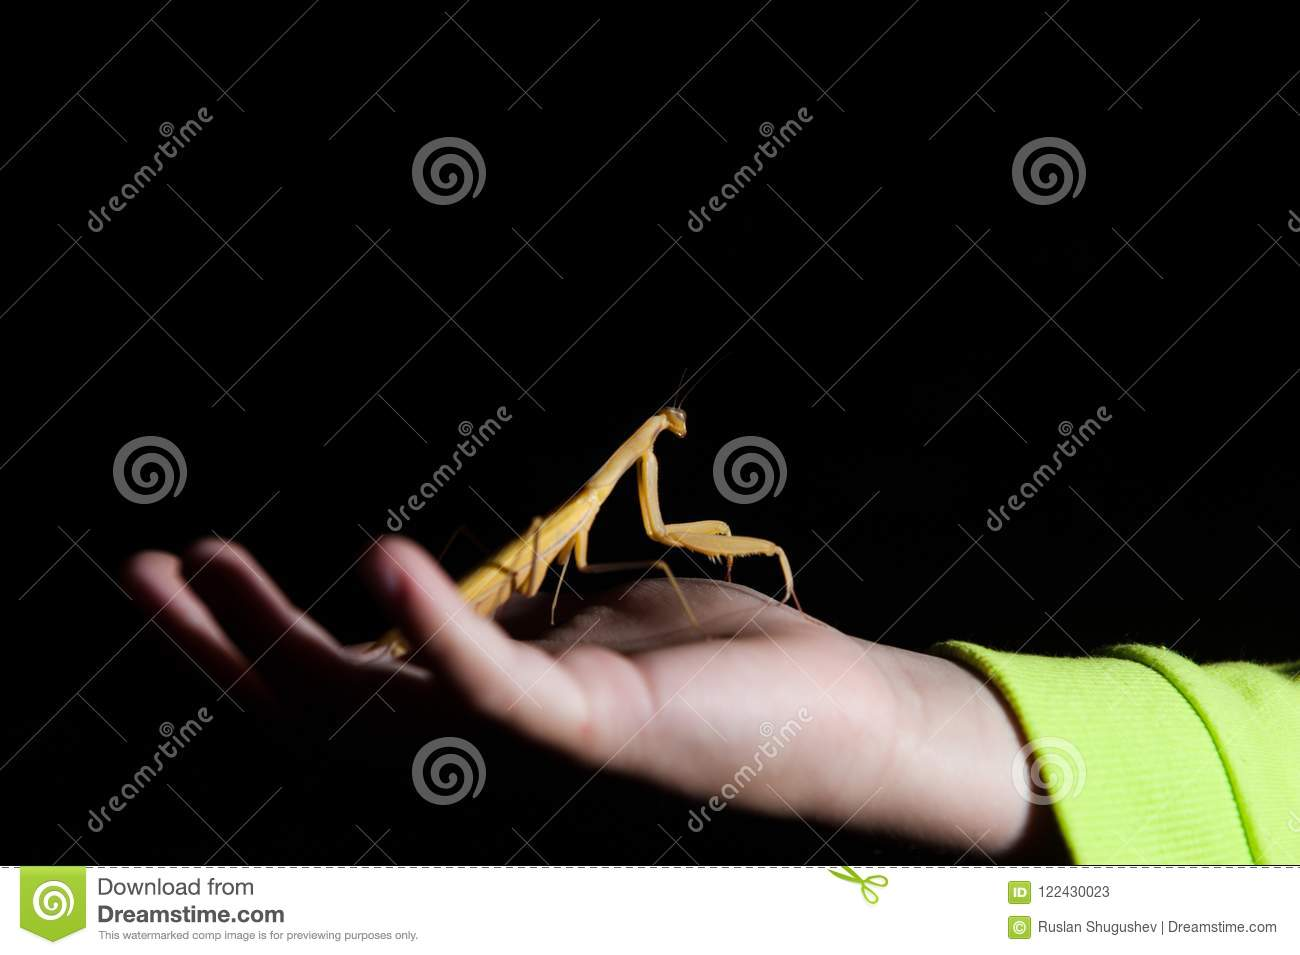 Child hand holding living insect mantis at night dark background copyspace